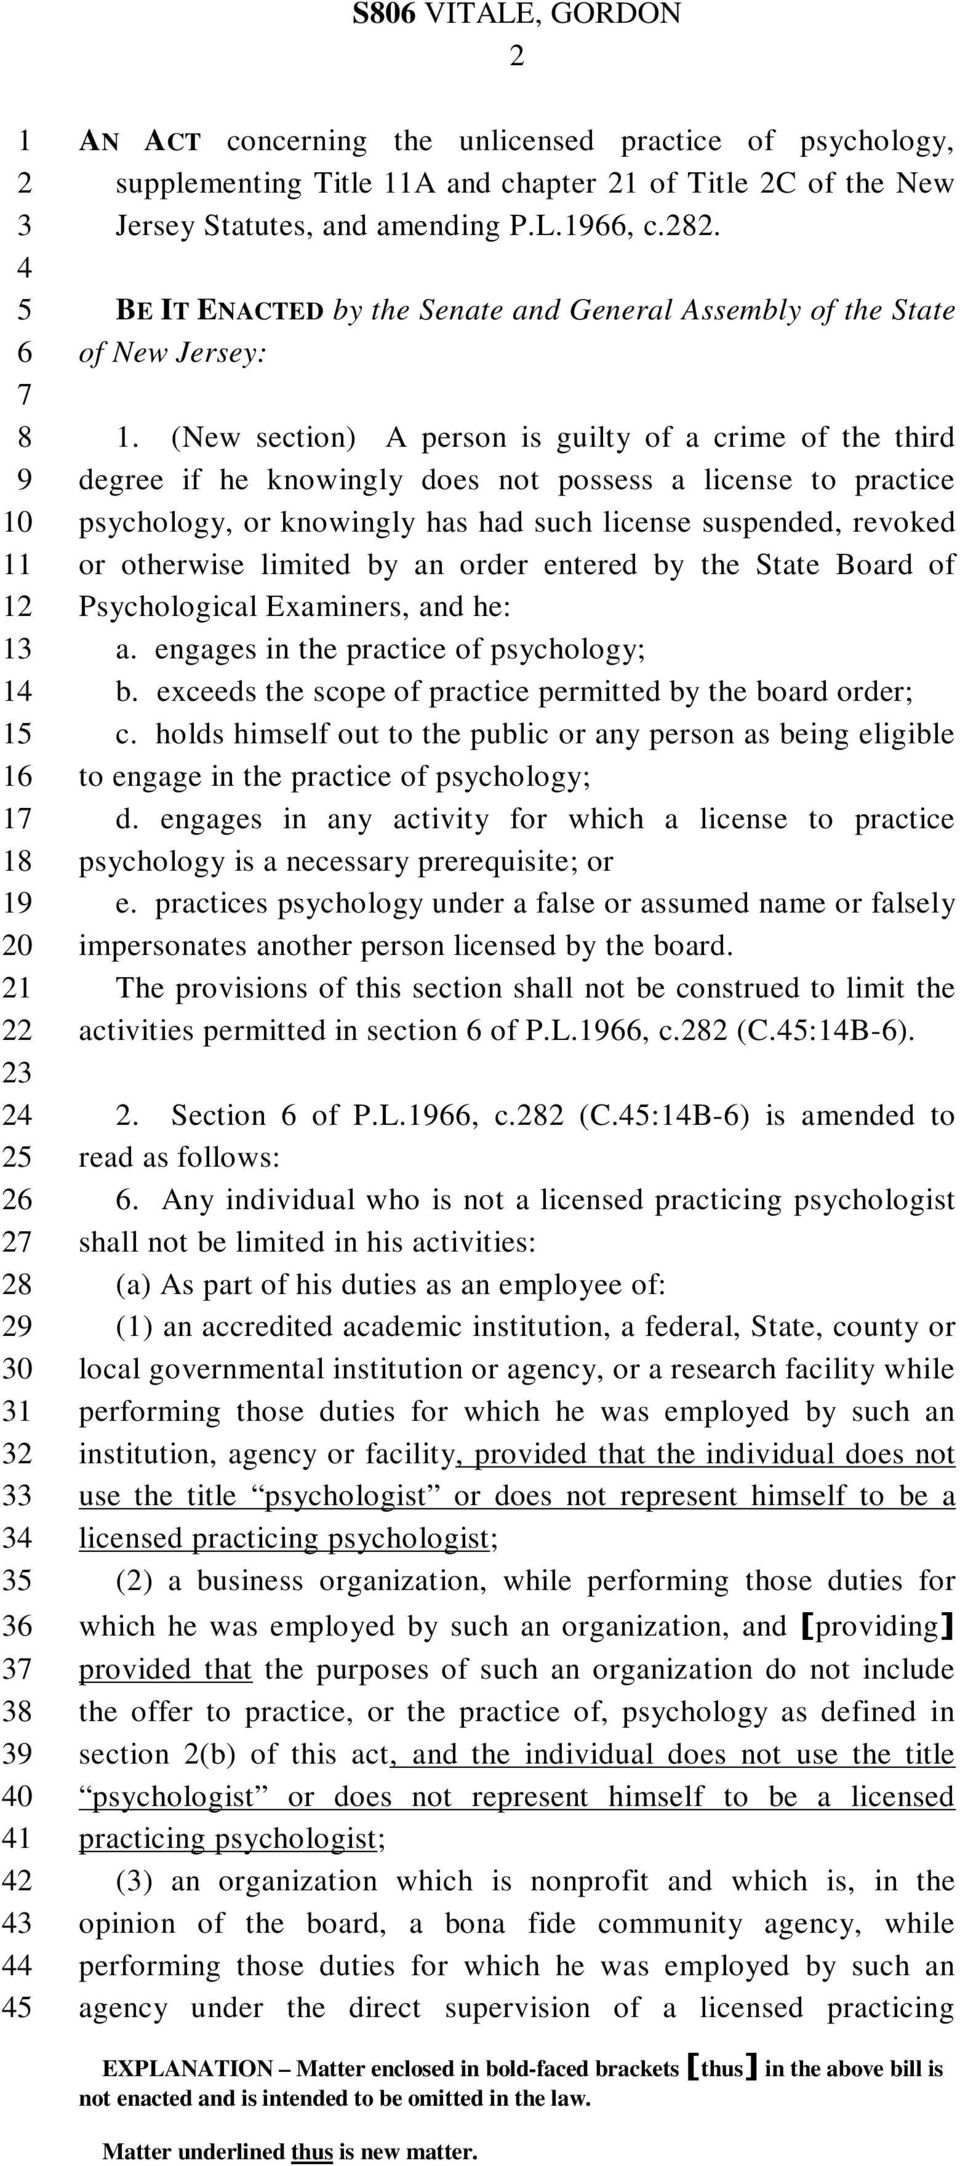 (New section) A person is guilty of a crime of the third degree if he knowingly does not possess a license to practice psychology, or knowingly has had such license suspended, revoked or otherwise